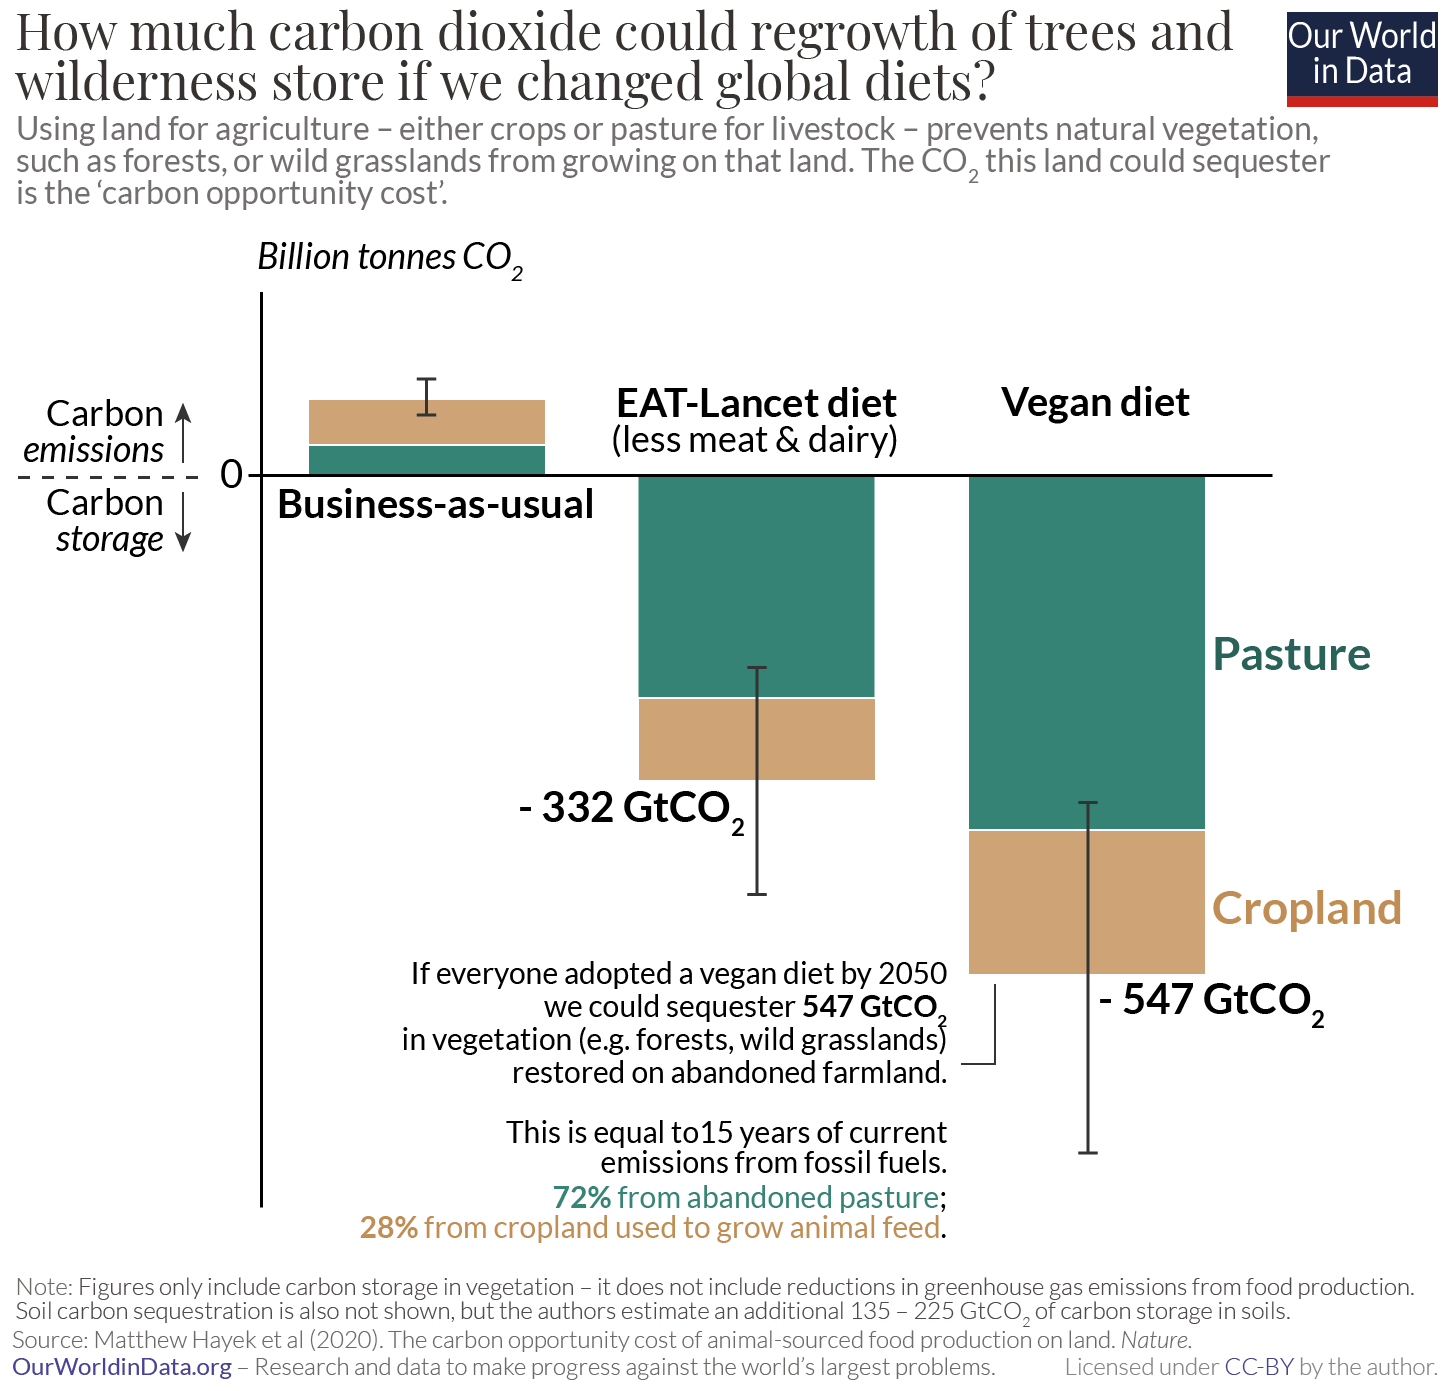 Carbon opportunity costs of livestock hayek et al.